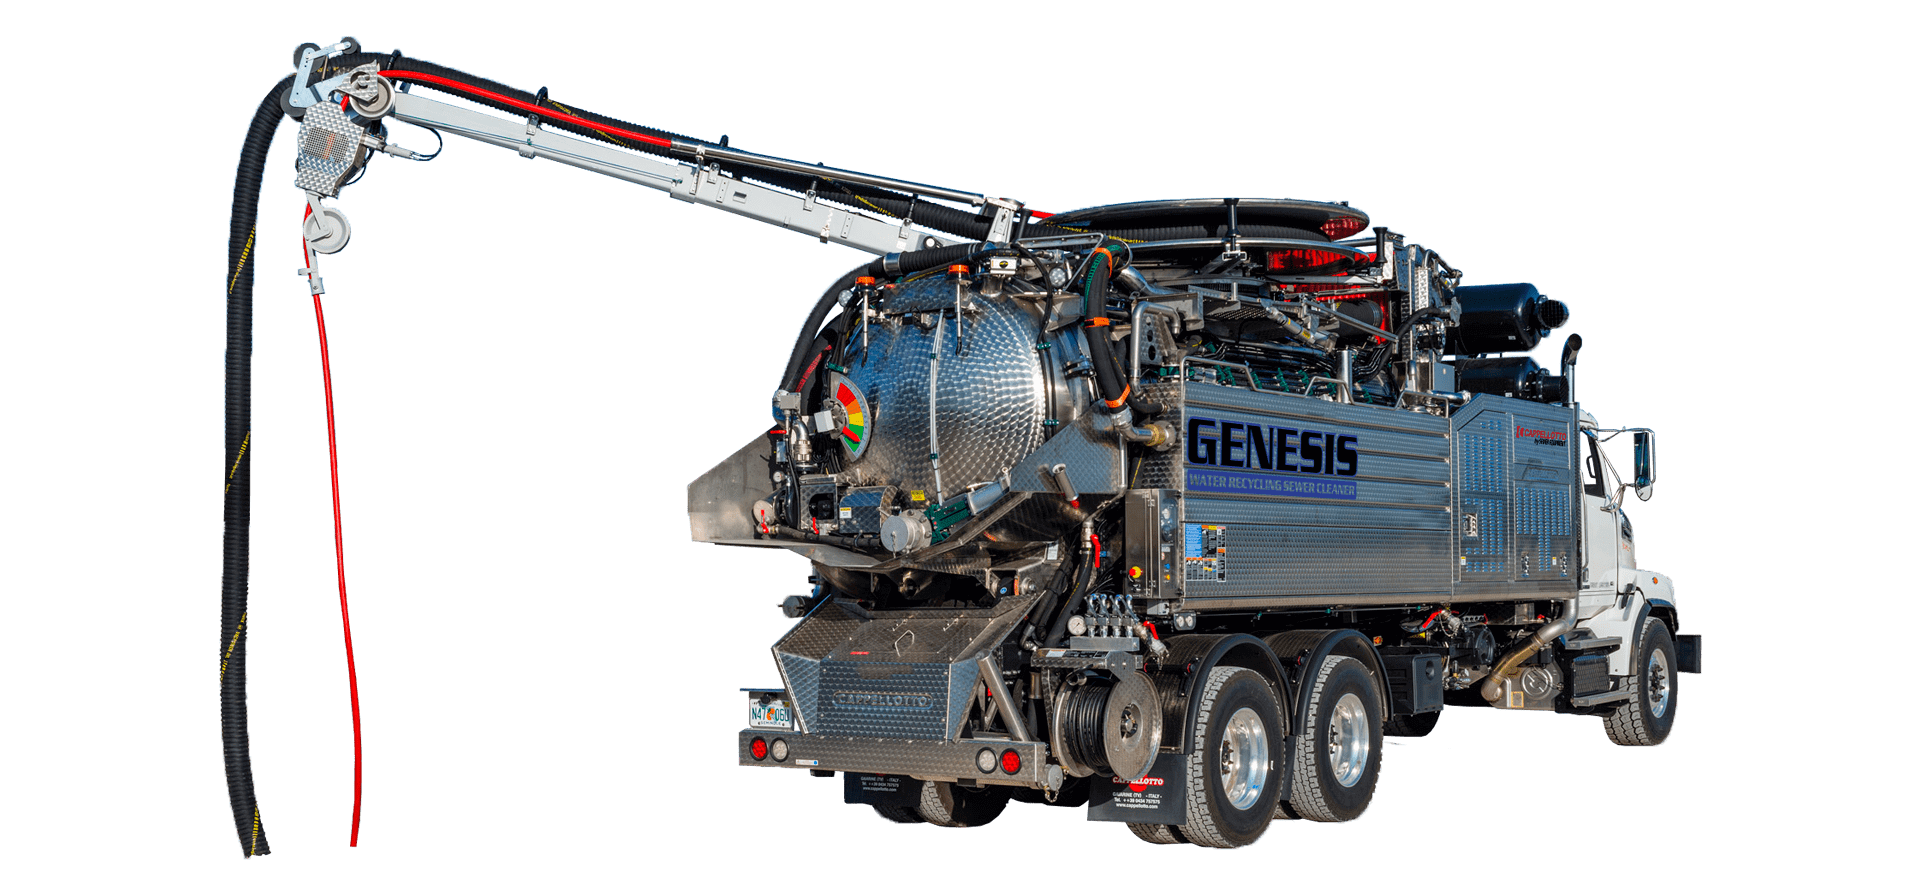 GENESIS Water recycling sewer cleaner with boom